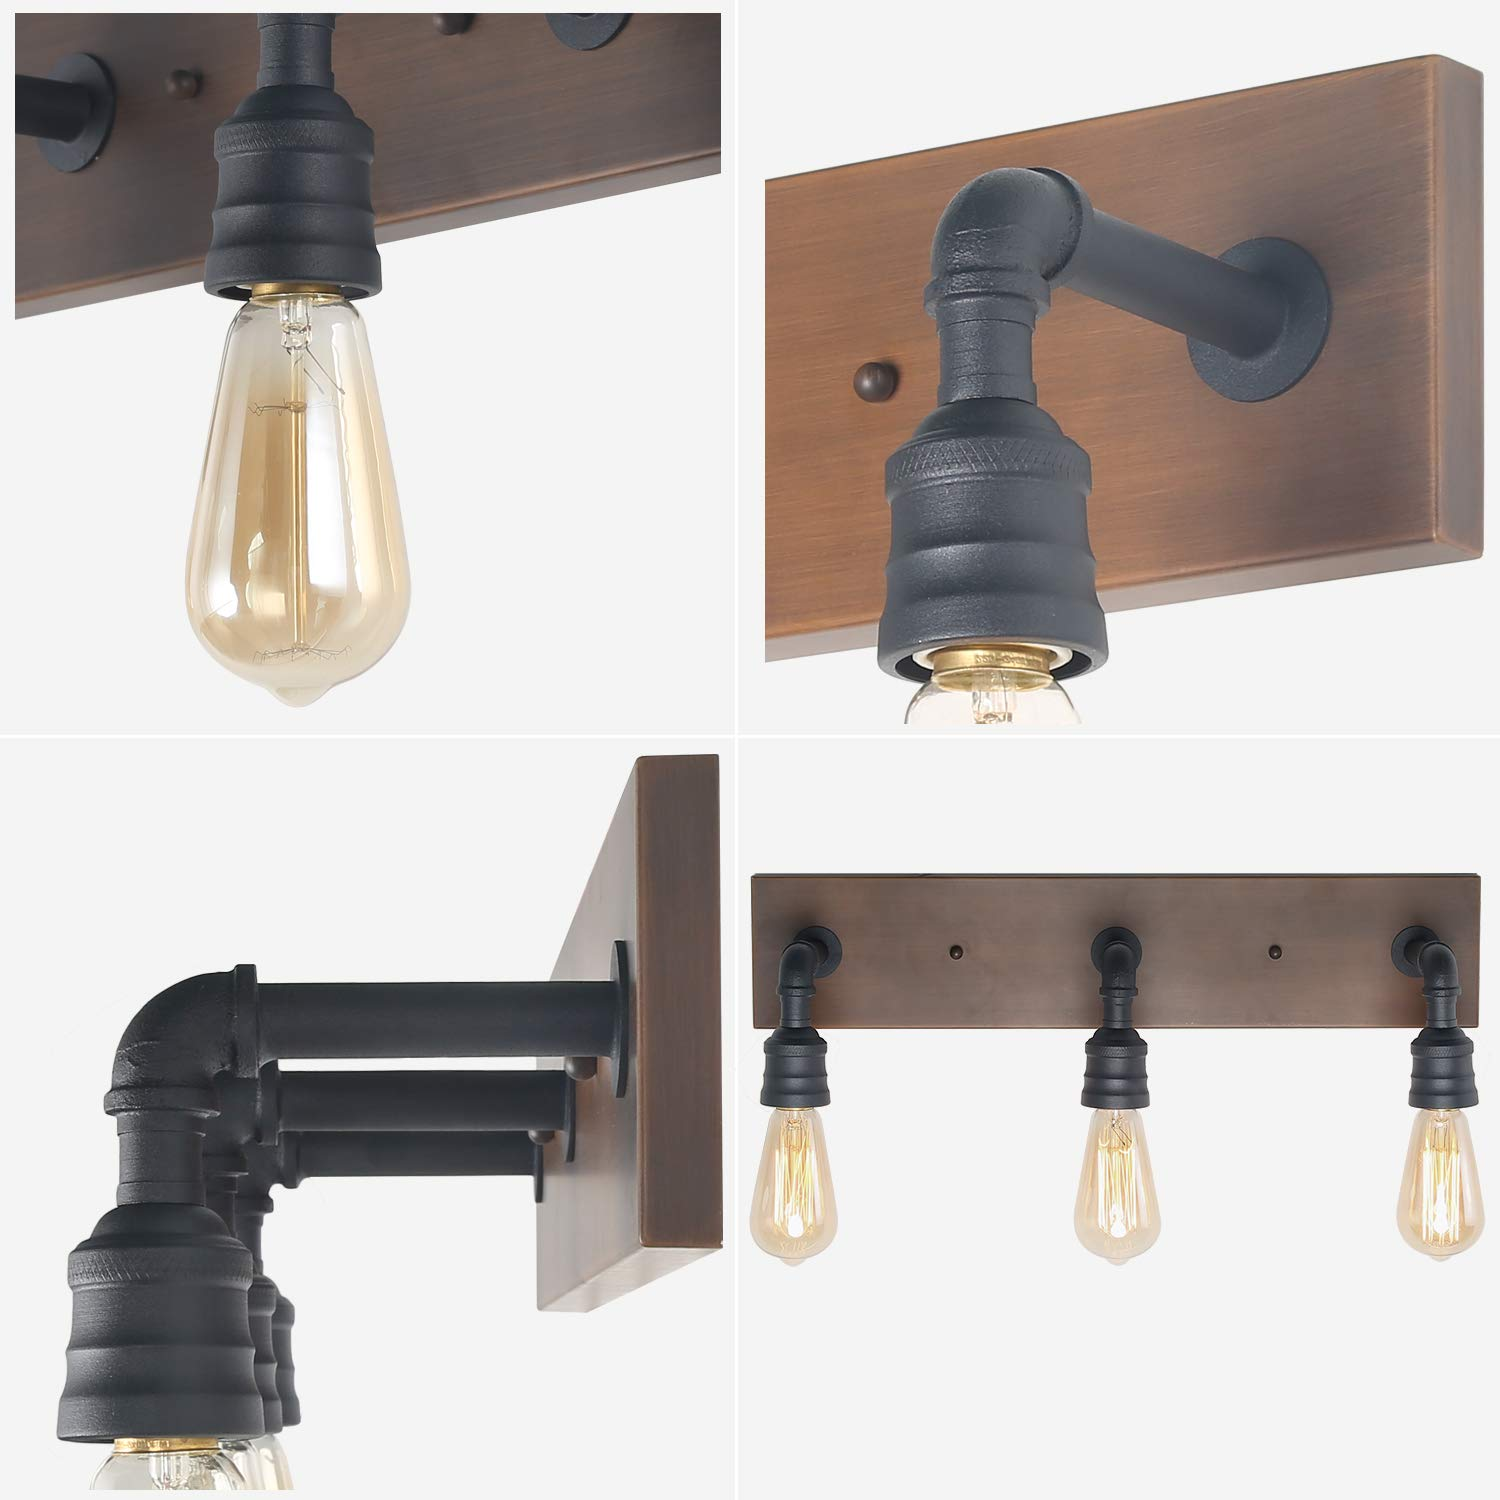 LNC Bathroom Vanity Lights, Farmhouse Wood and Water Pipe Wall Sconces(3 Heads )A03376, by LNC (Image #5)